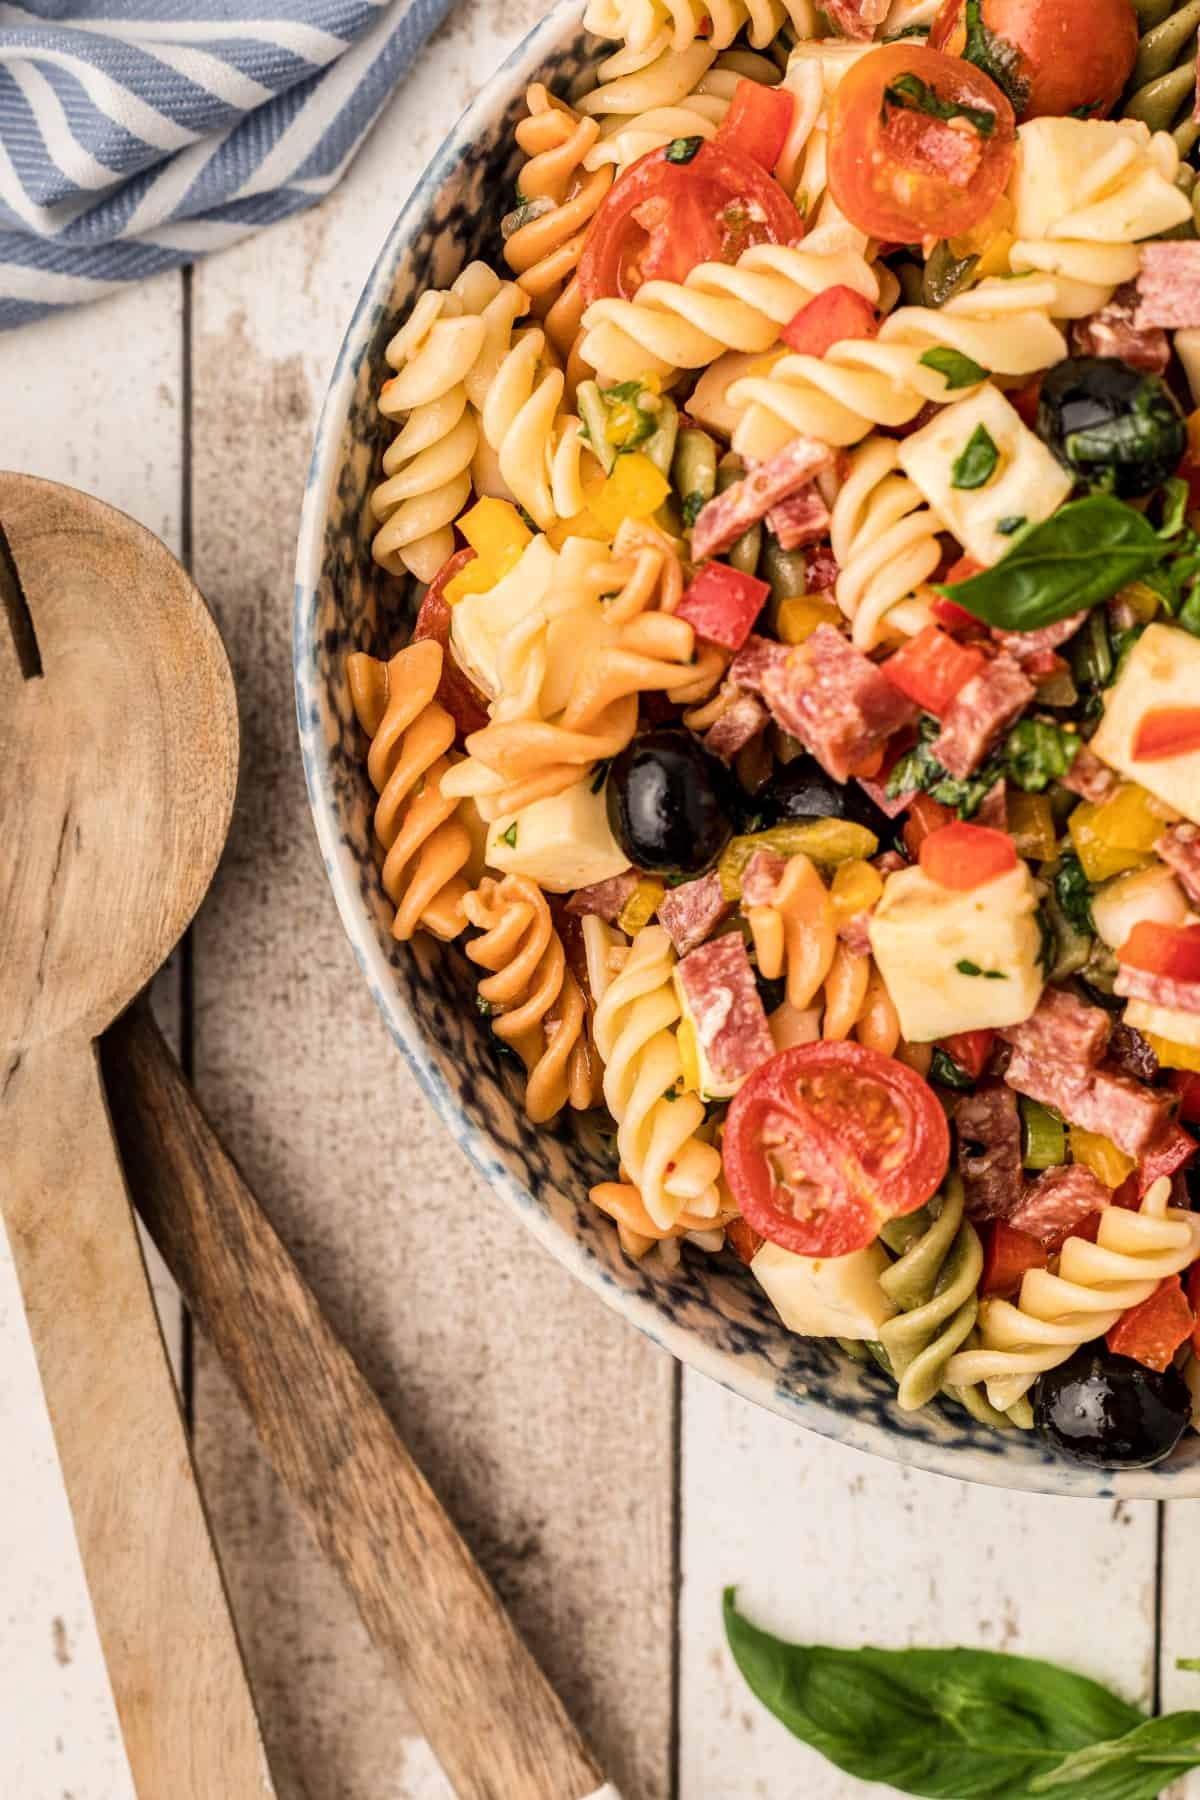 Showing half a bowl of pasta salad, overhead.